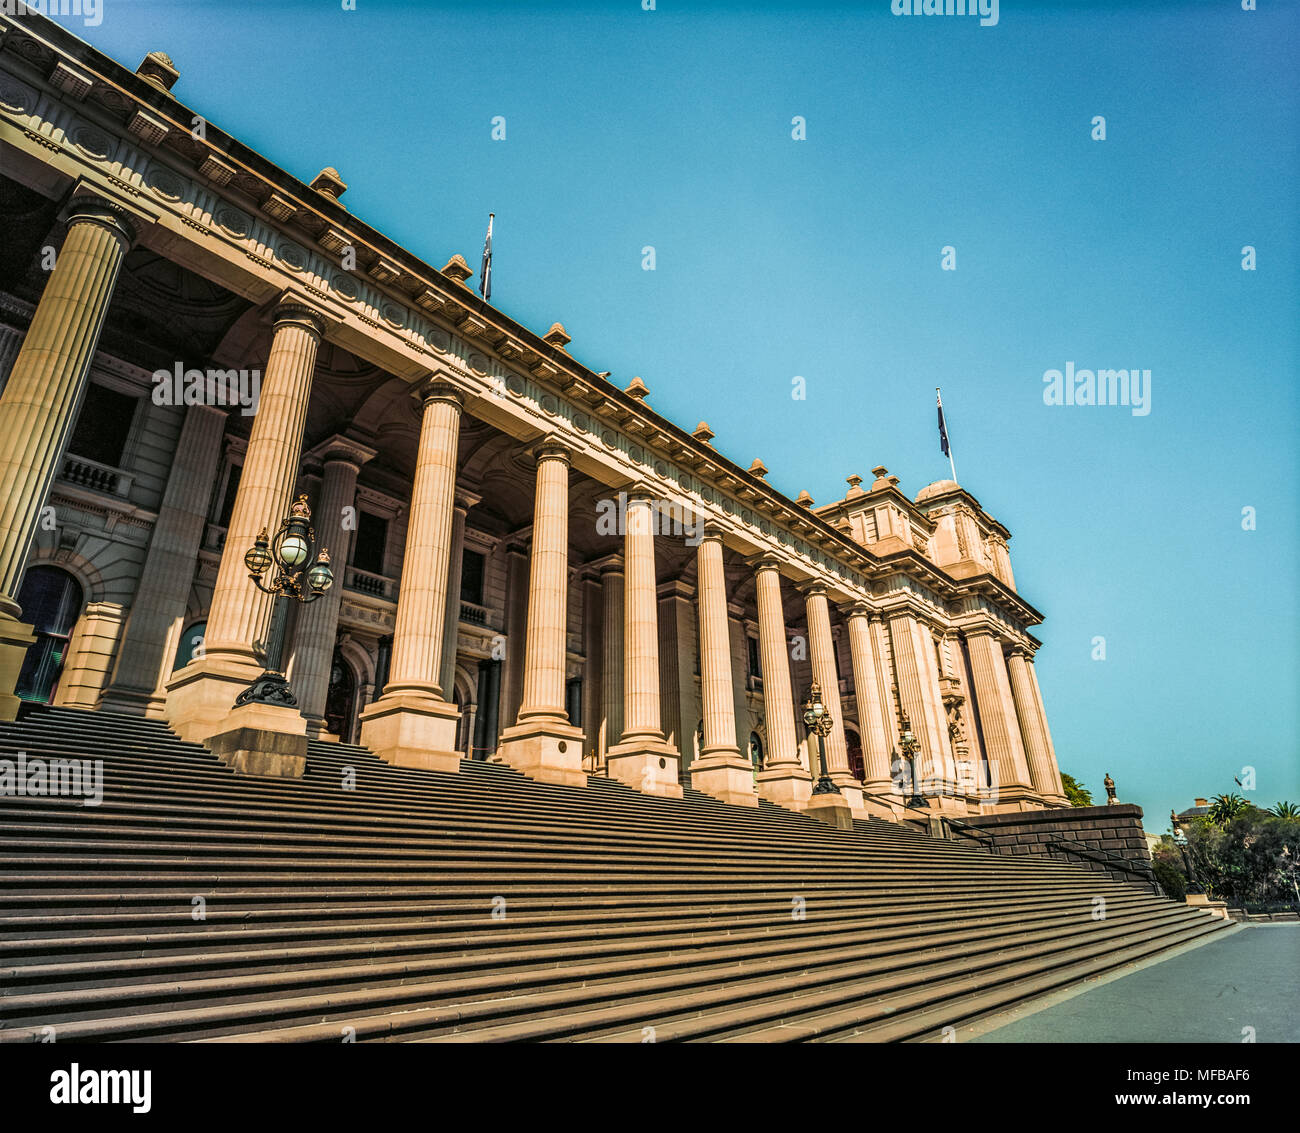 The steps and facade of Parliament House, Spring street, Melbourne, Victoria, Australia. - Stock Image